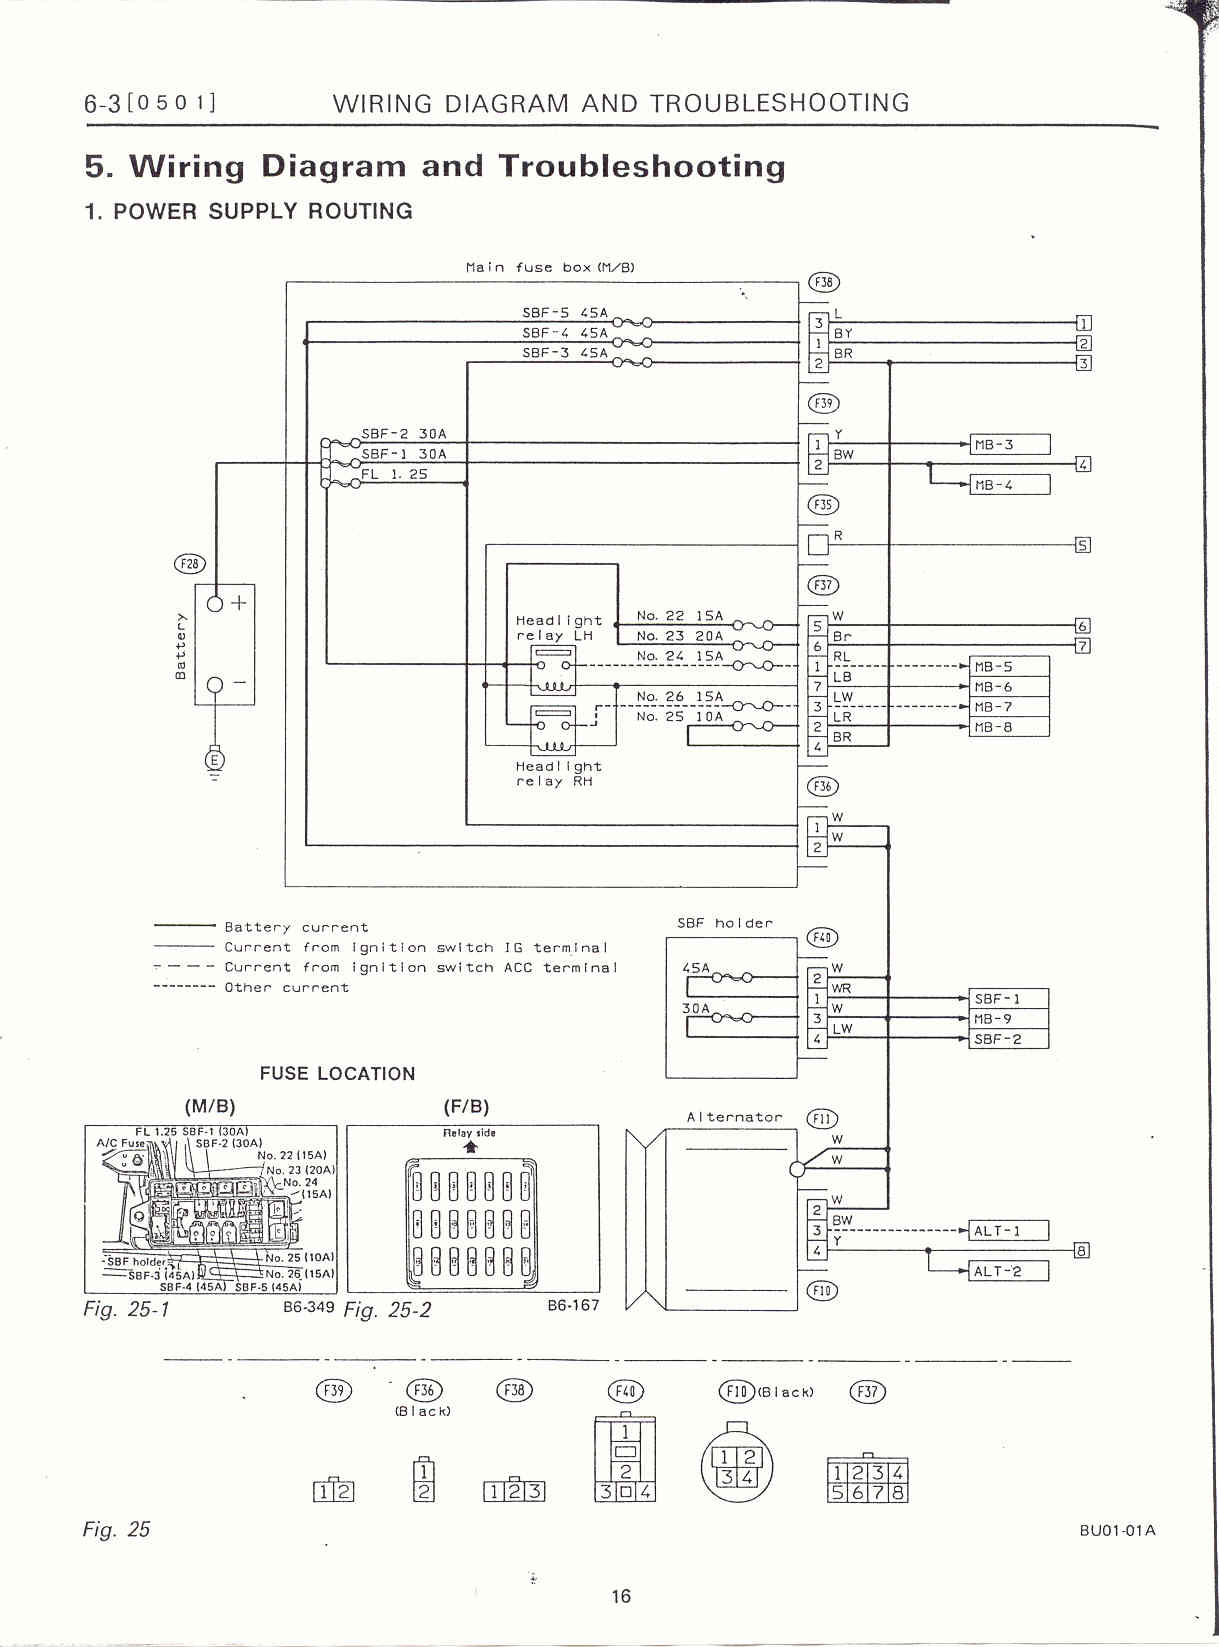 Surrealmirage Subaru Legacy Swap Electrical Info Notes 2008 Tundra Brake Controller Wiring Diagram Power Supply Routing Page 1